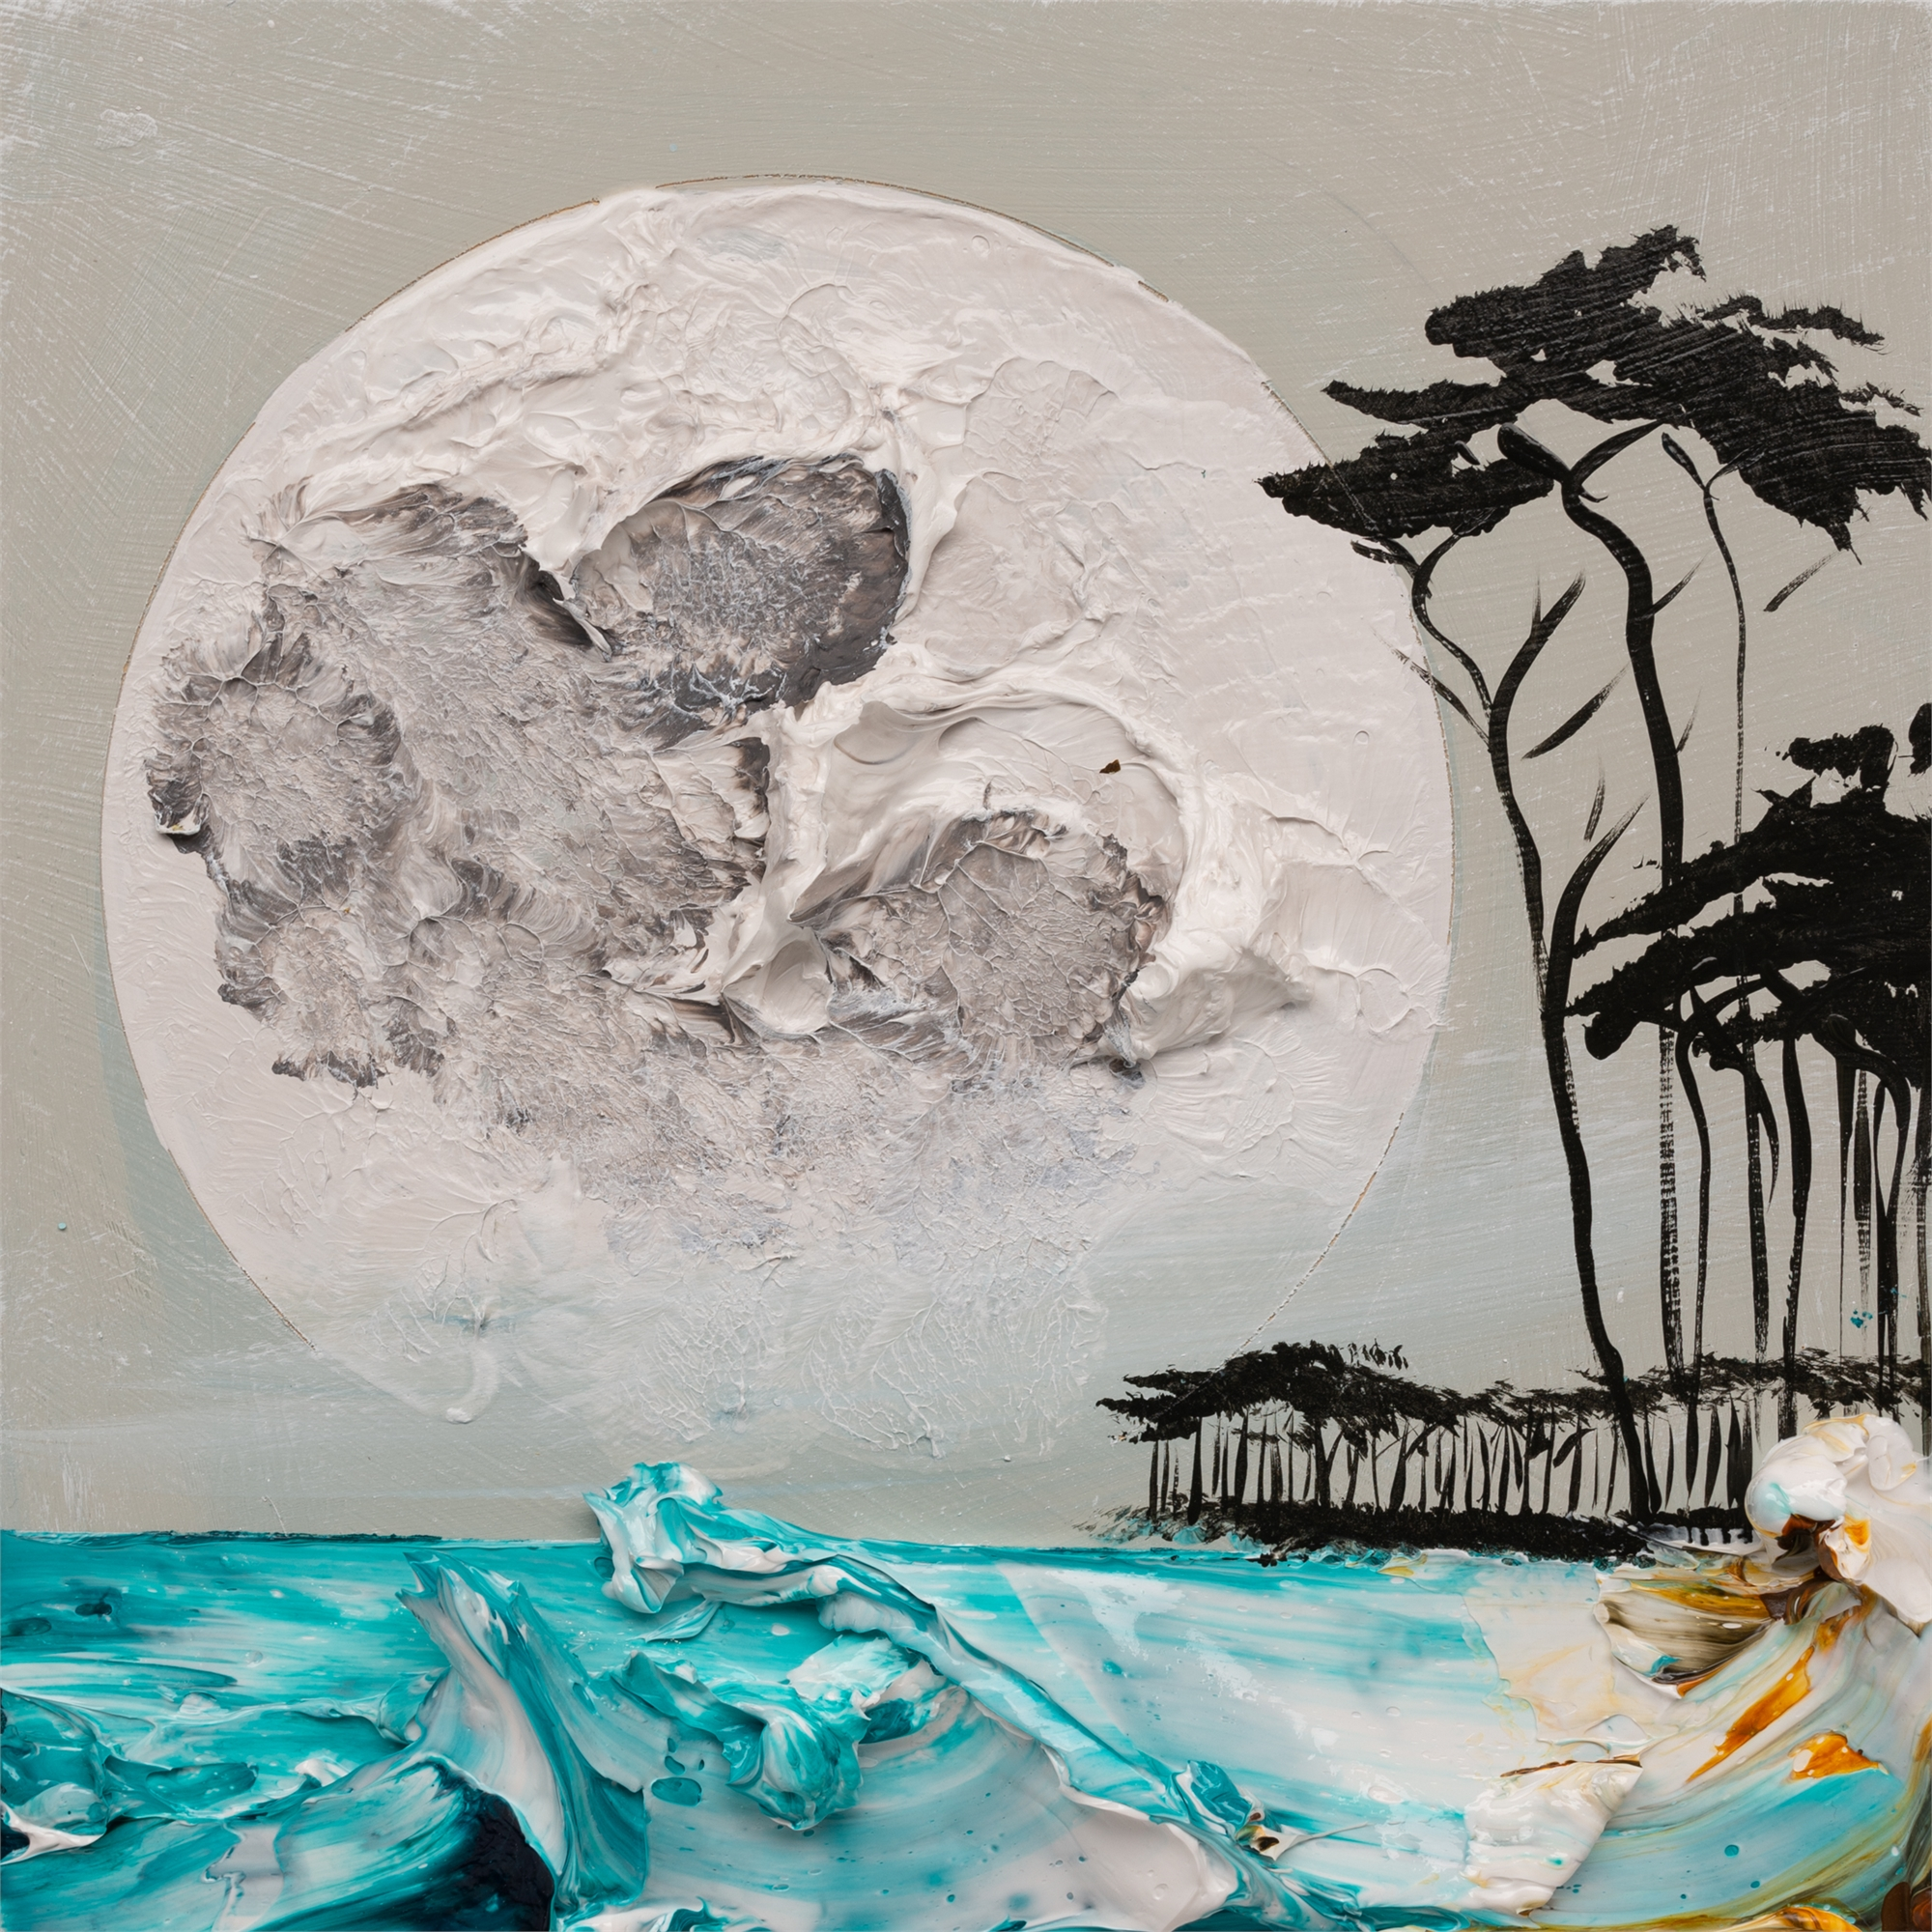 MOONSCAPE MS-12X12-2019-326 by JUSTIN GAFFREY